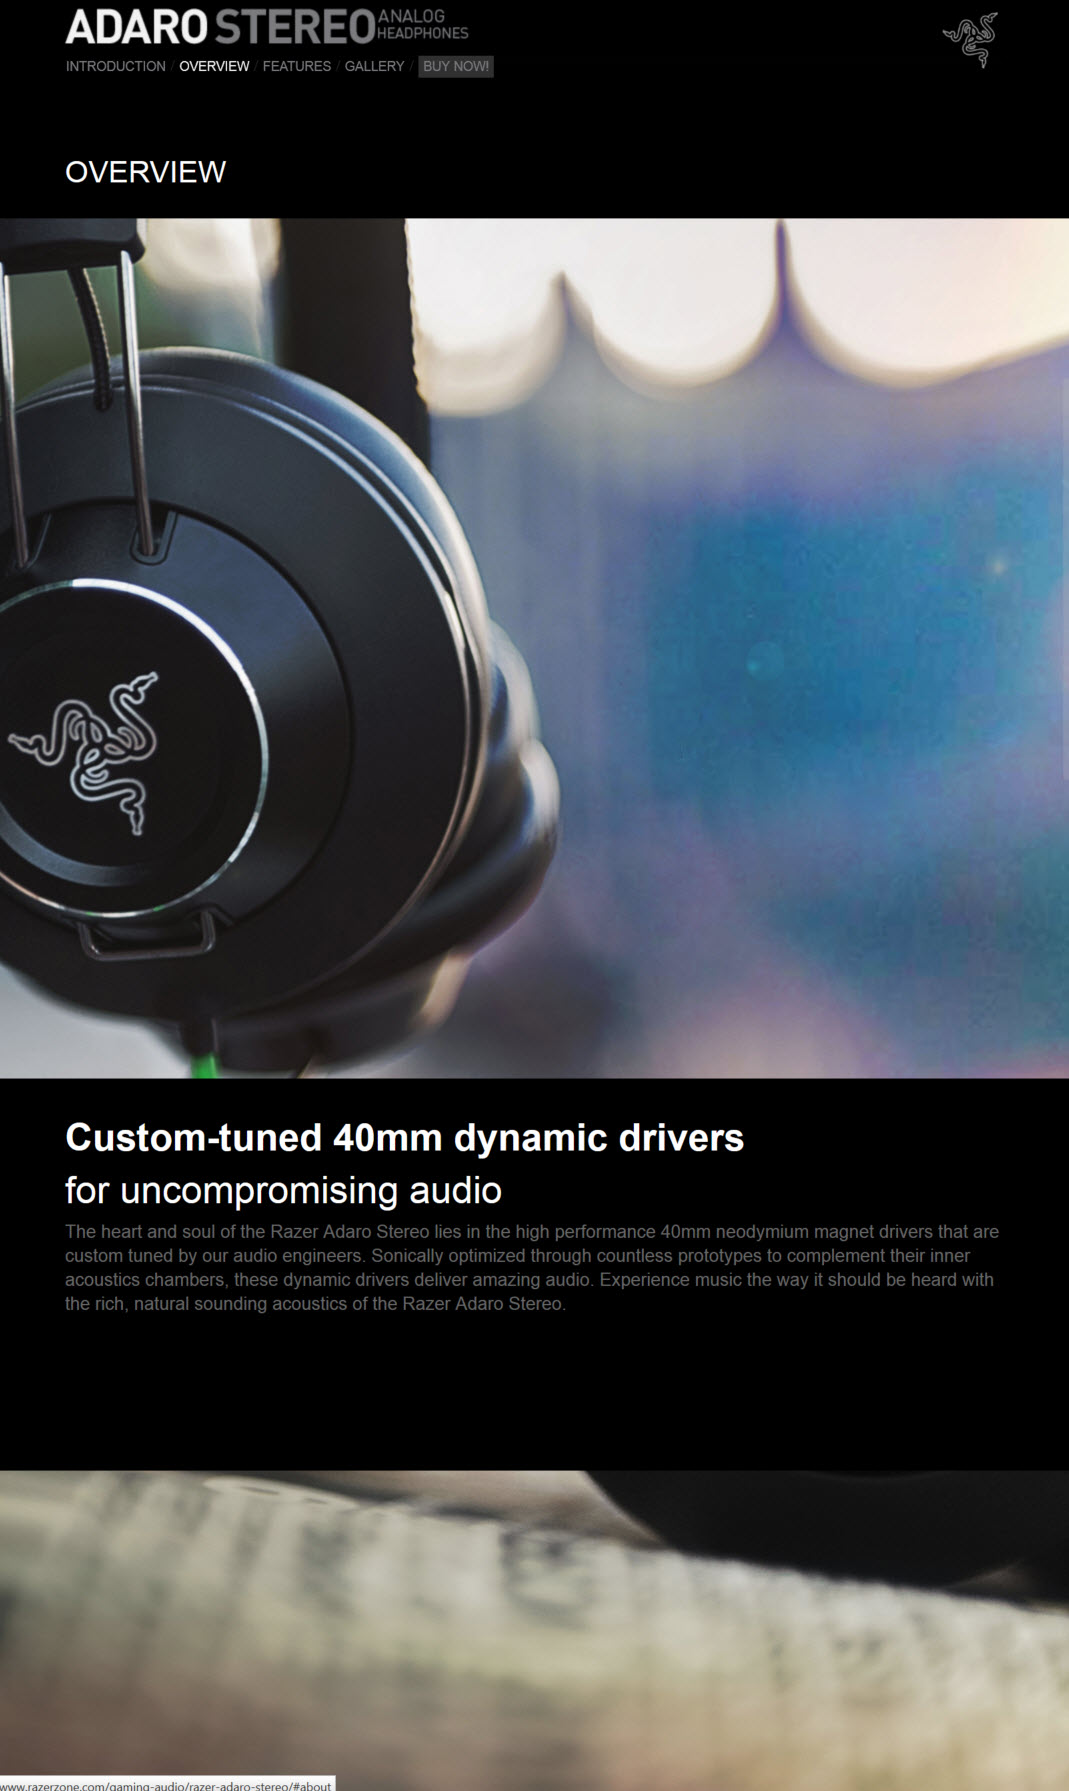 2014 07 31 21 50 32 RAZER ADARO STEREO Analog Headphones Review